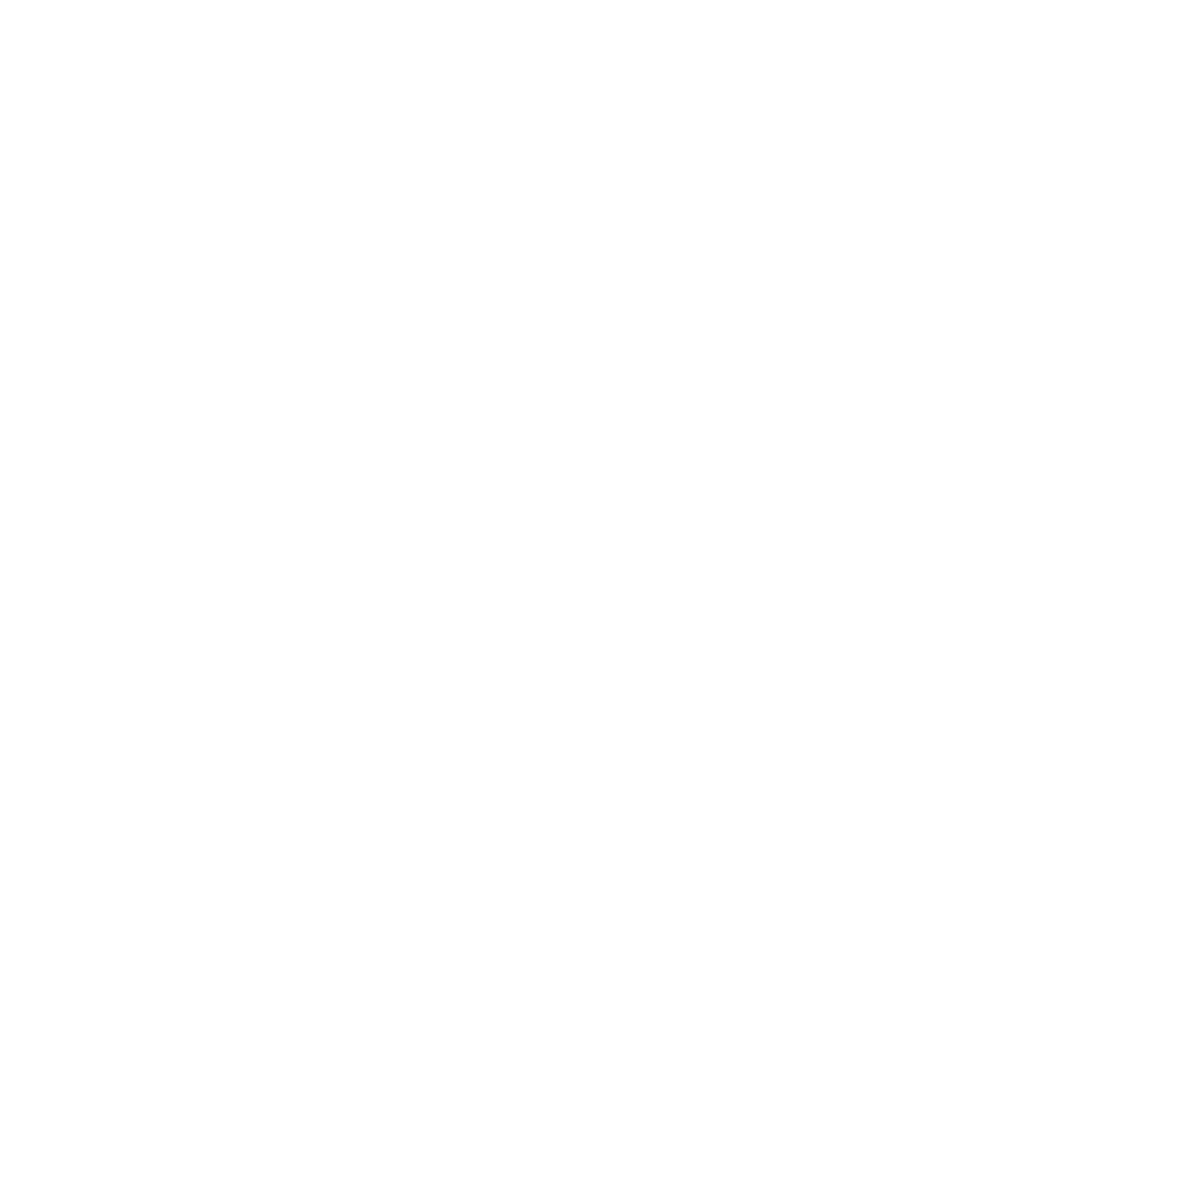 Zigurat Global Institute of Technology Logo